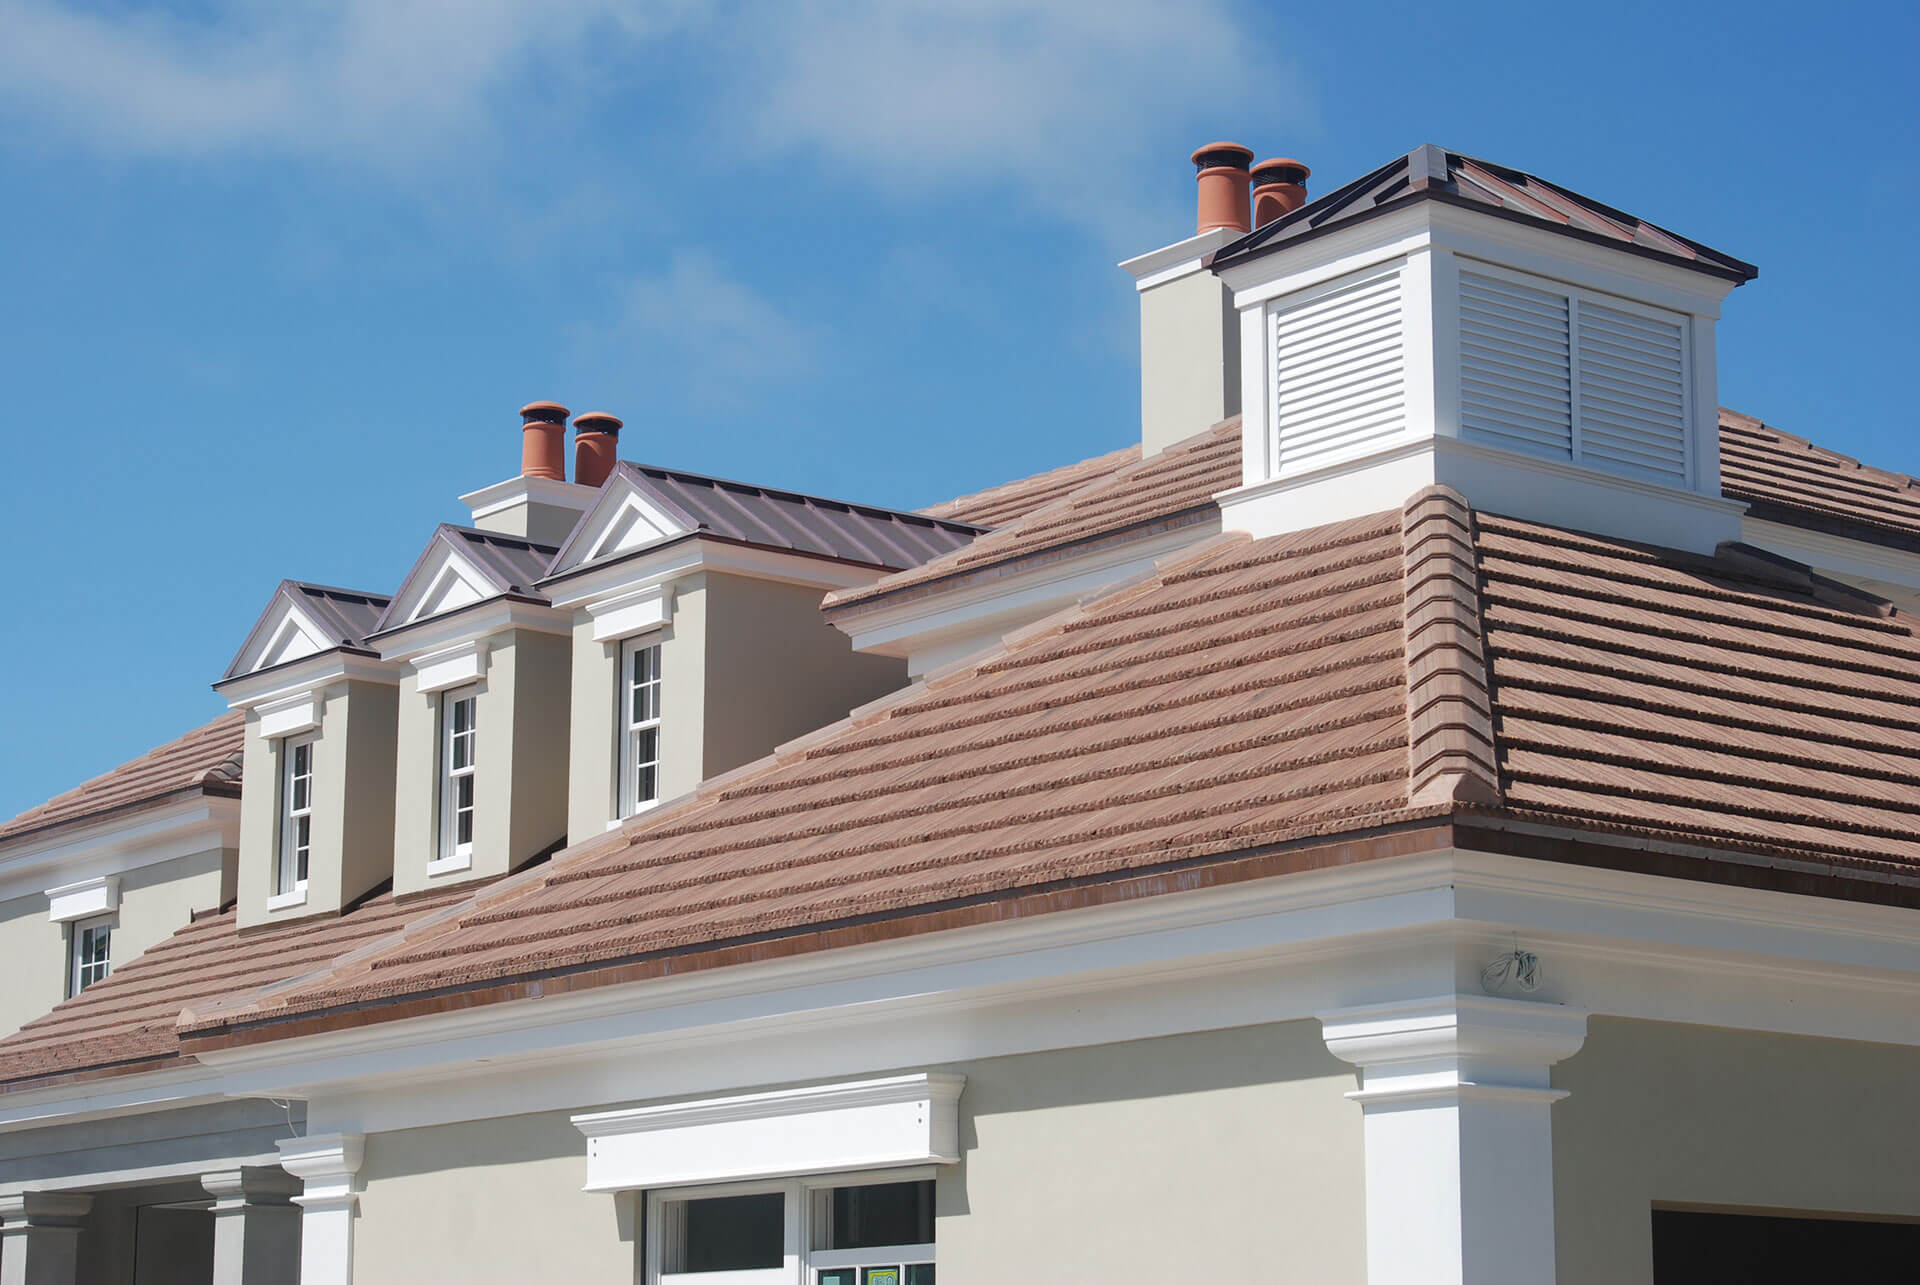 Vero Beach Roofing, Inc. - Commercial Roofing Services, Florida Roofing Contractor